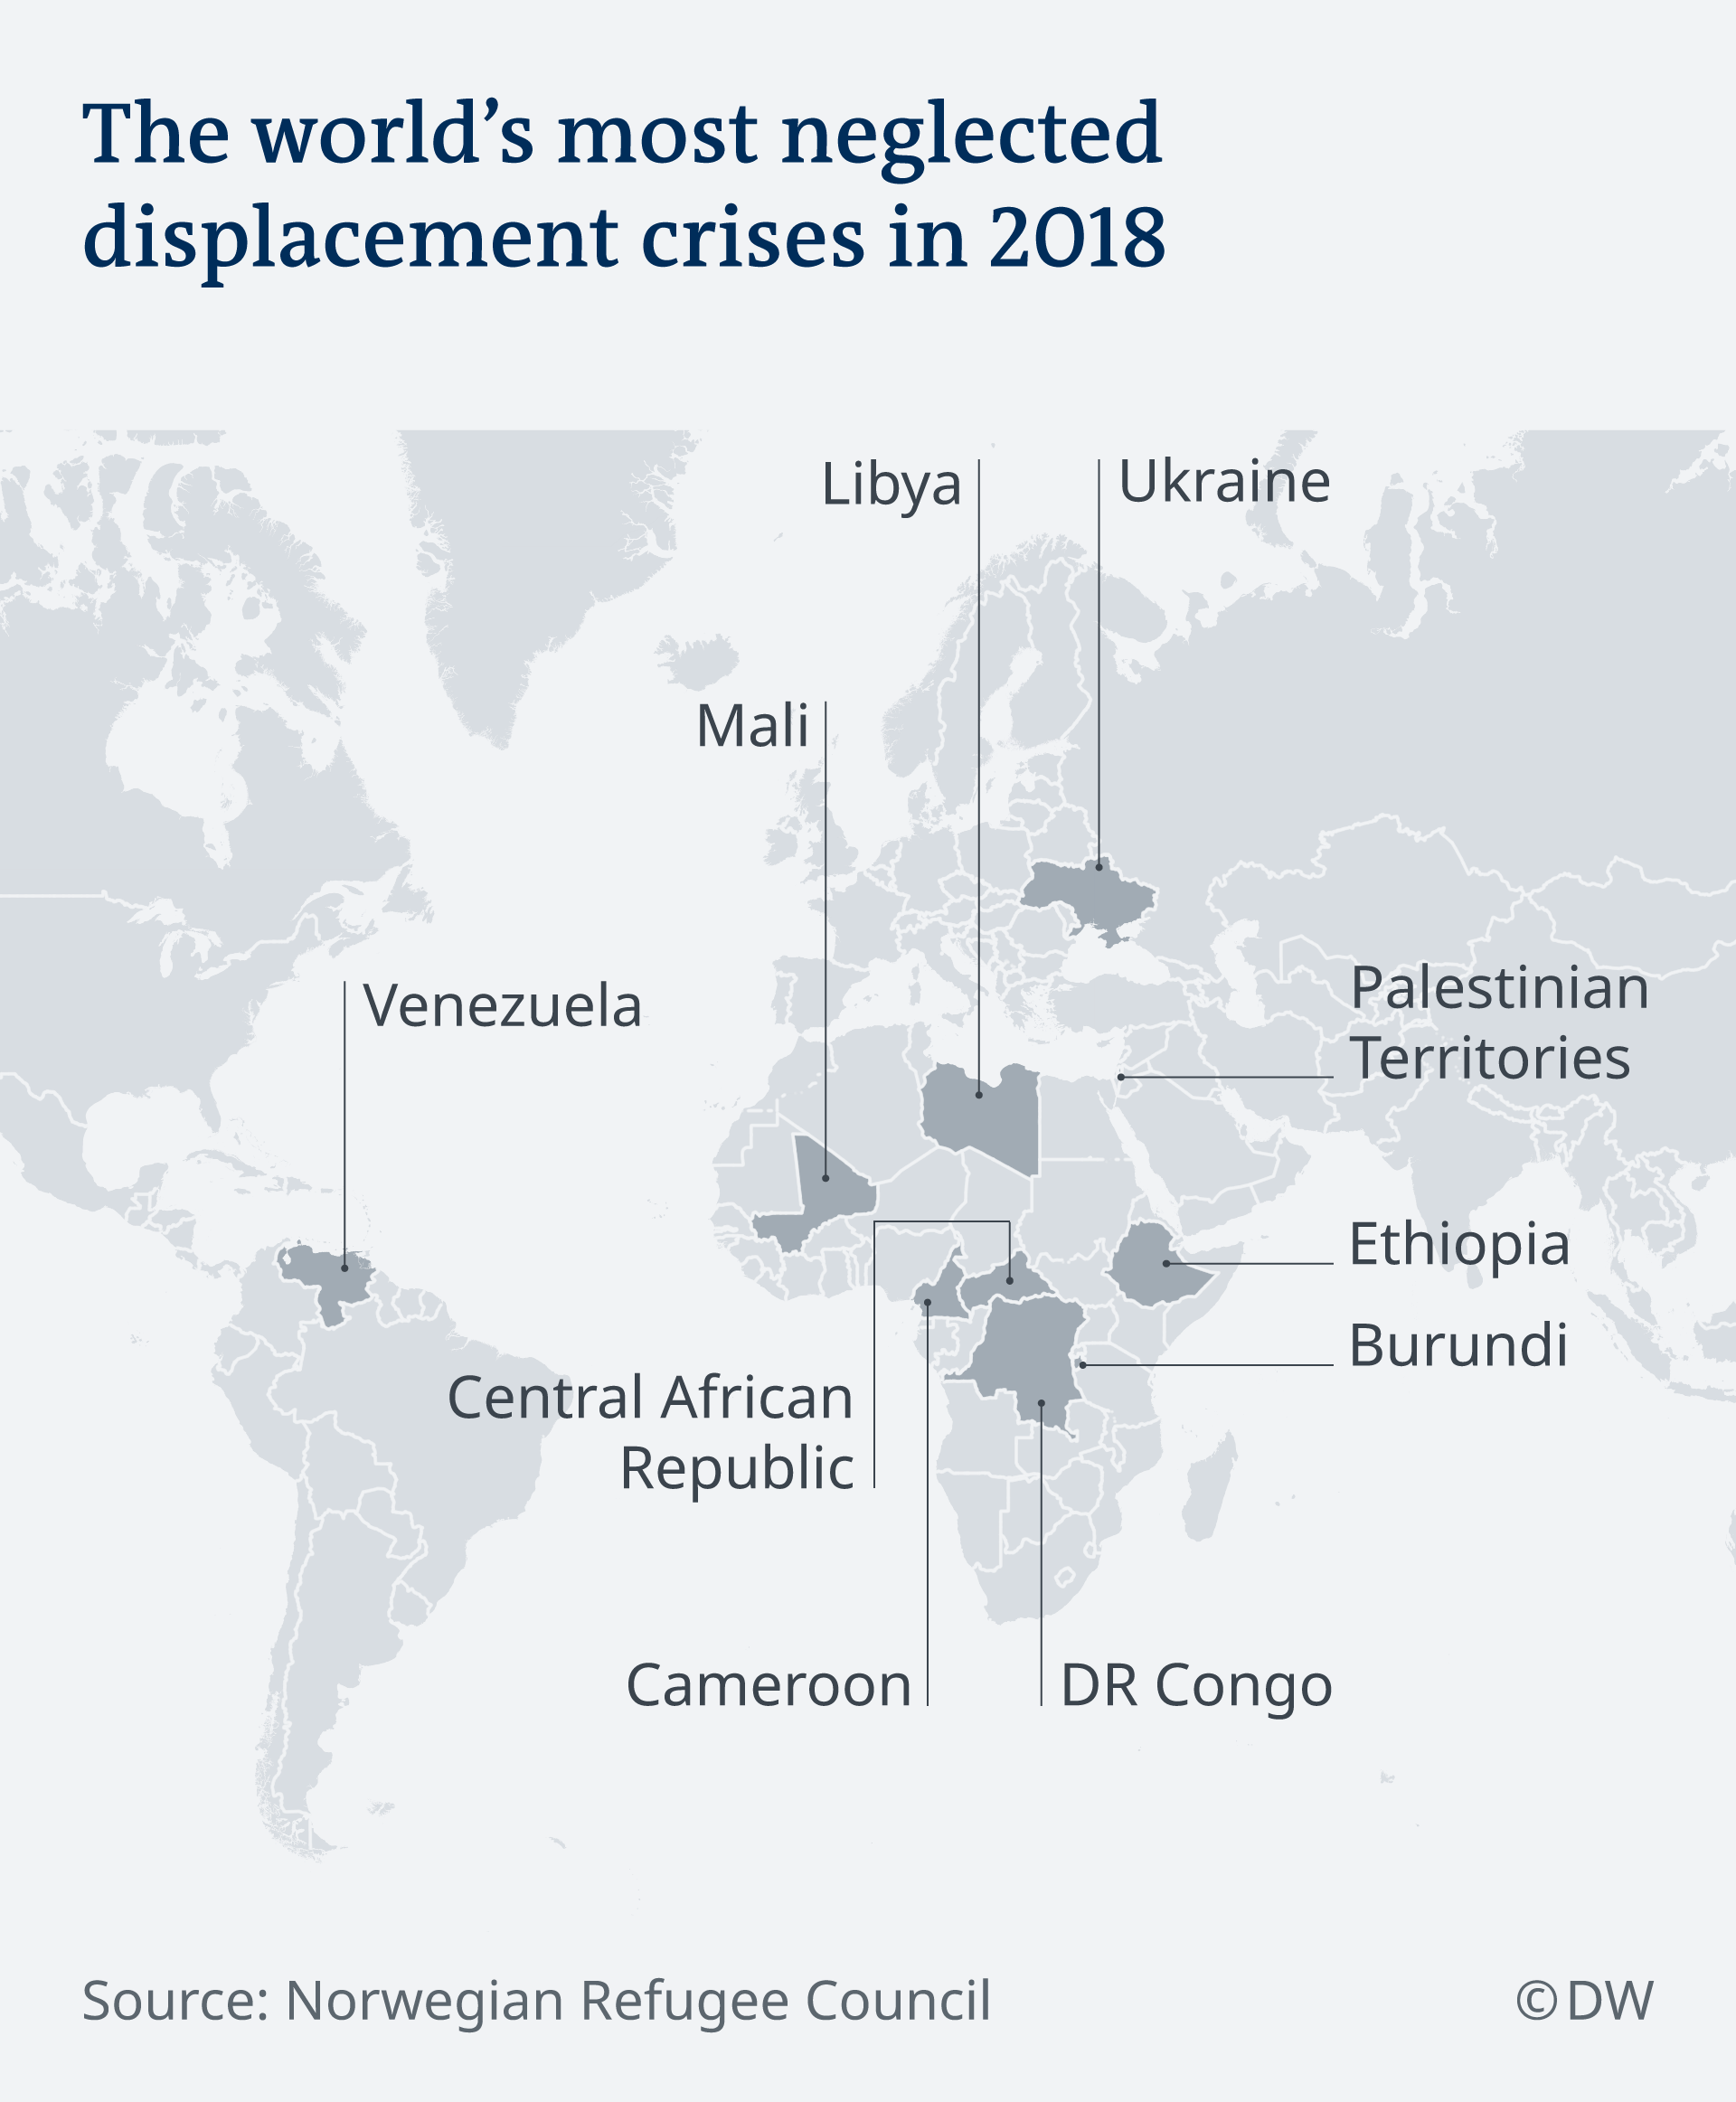 Map of the world's most neglected displacement crises